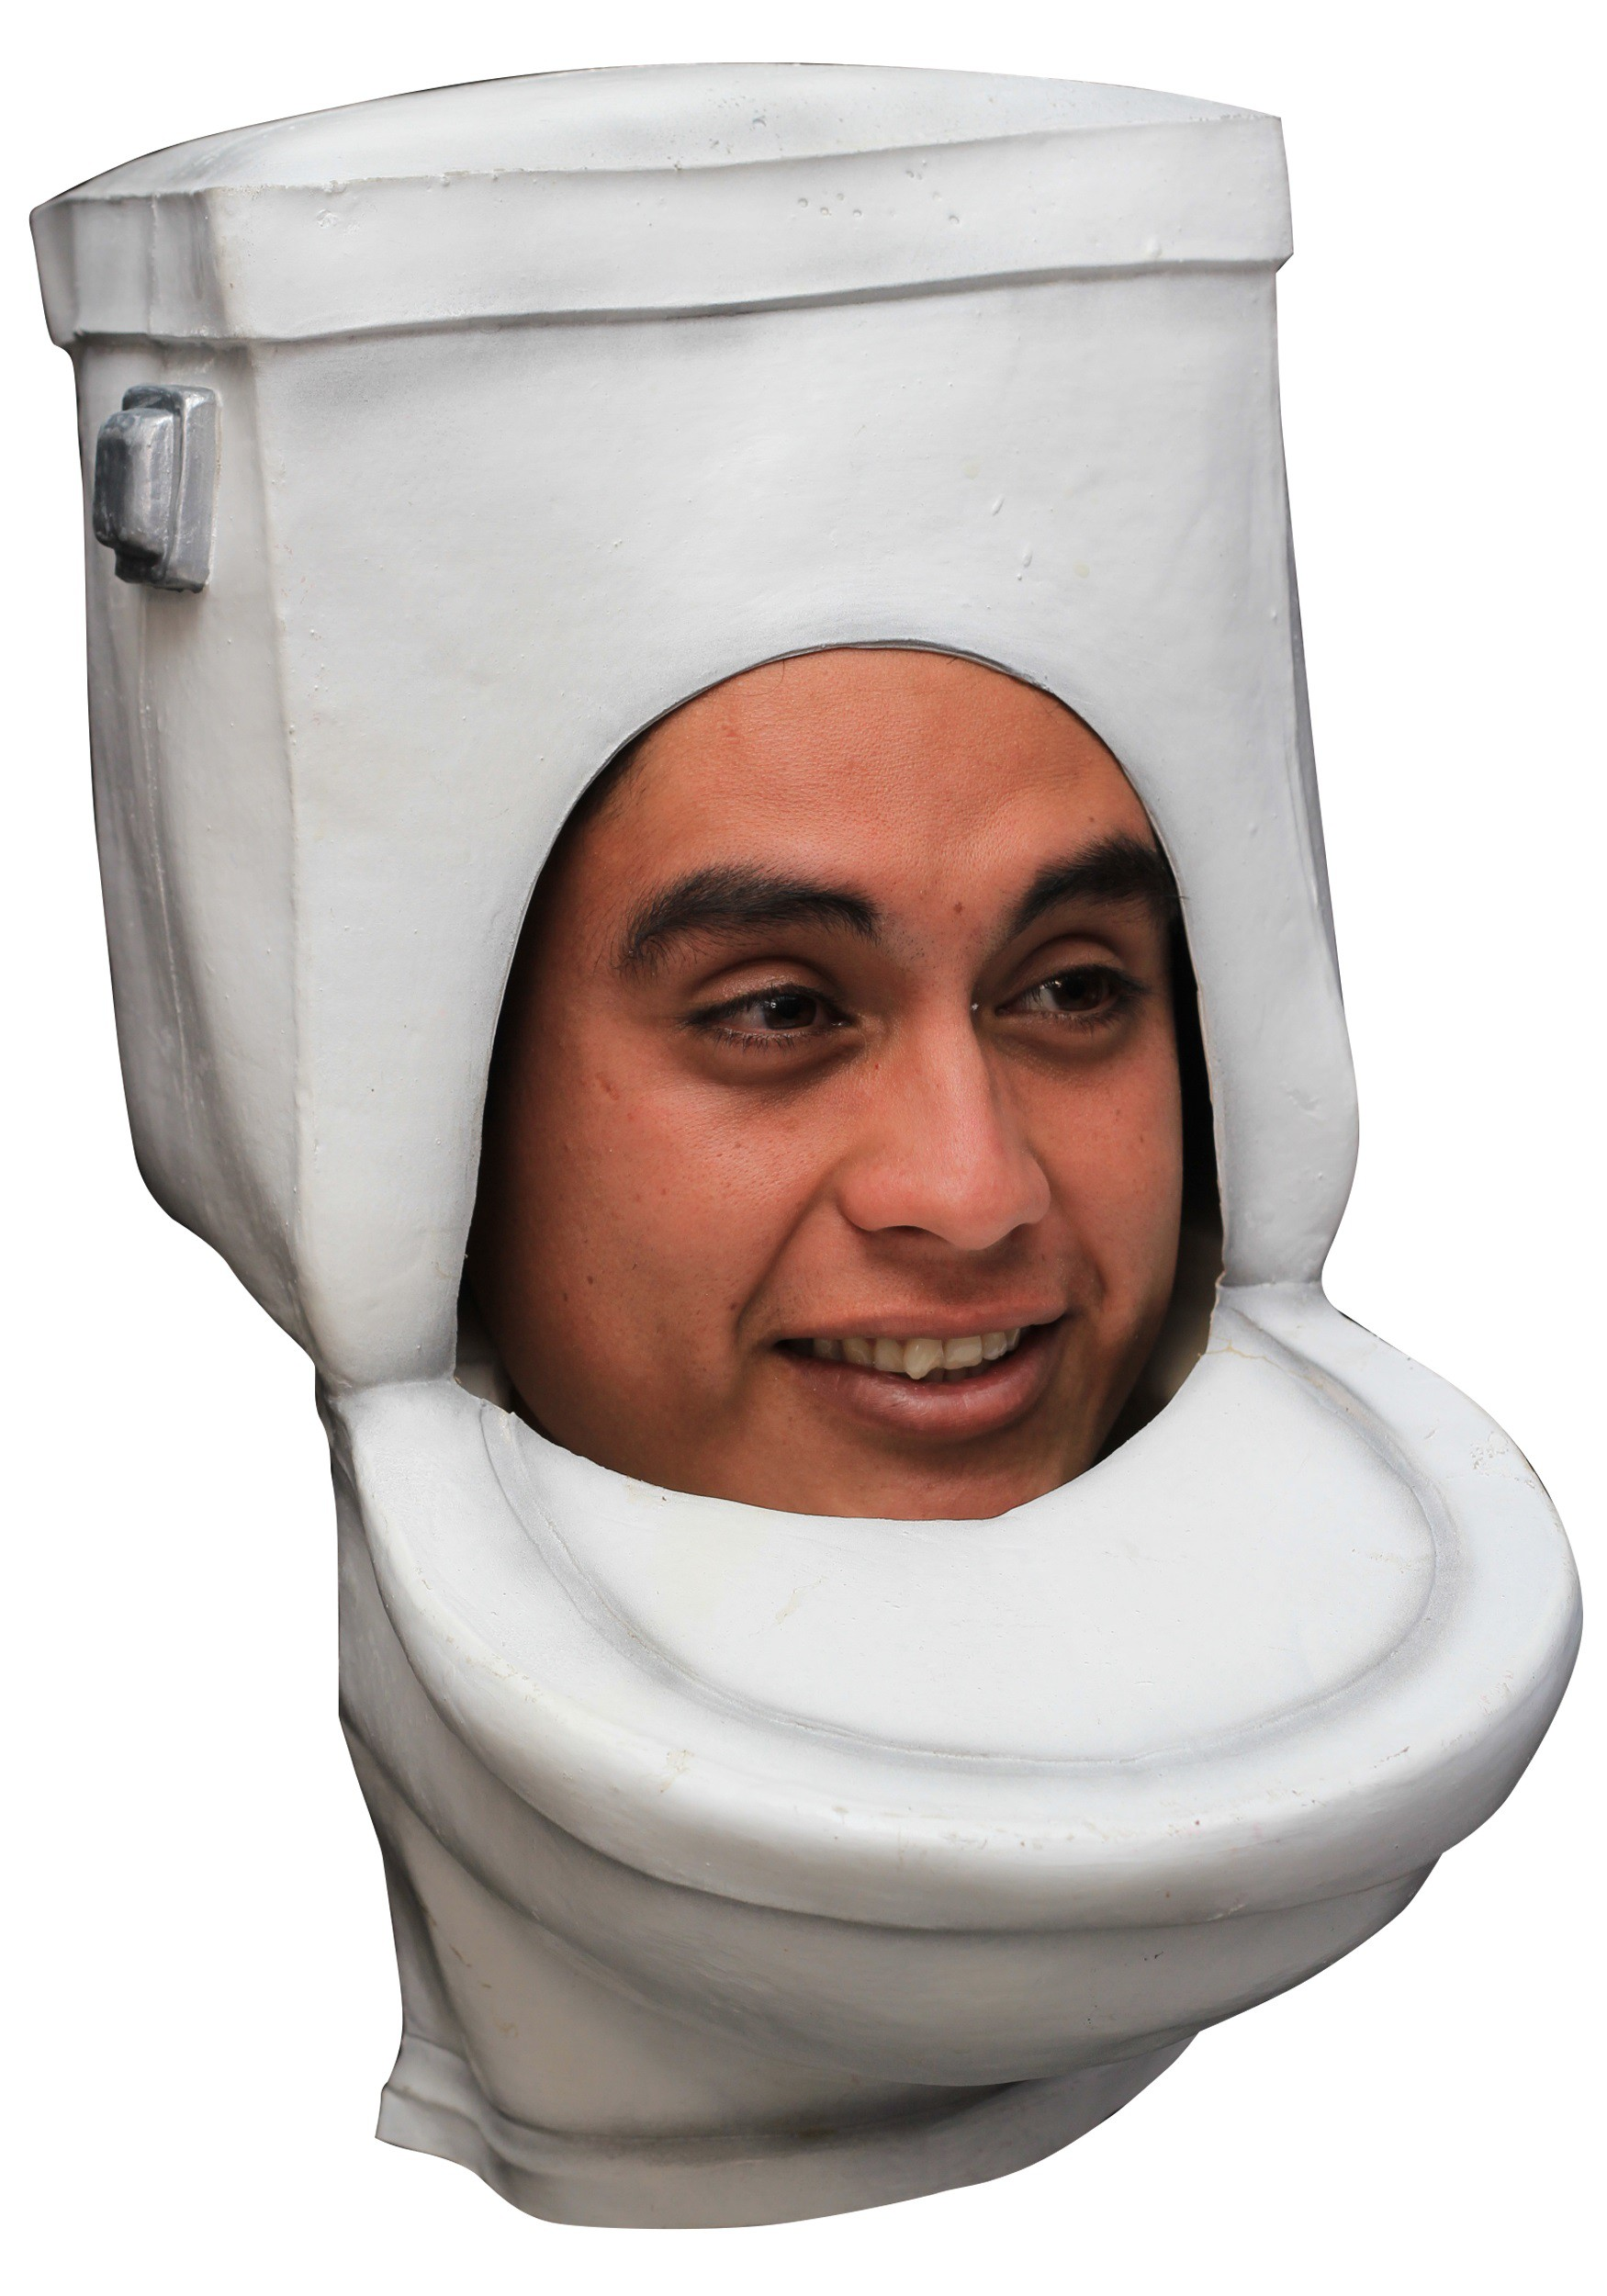 The Toilet Adult Mask